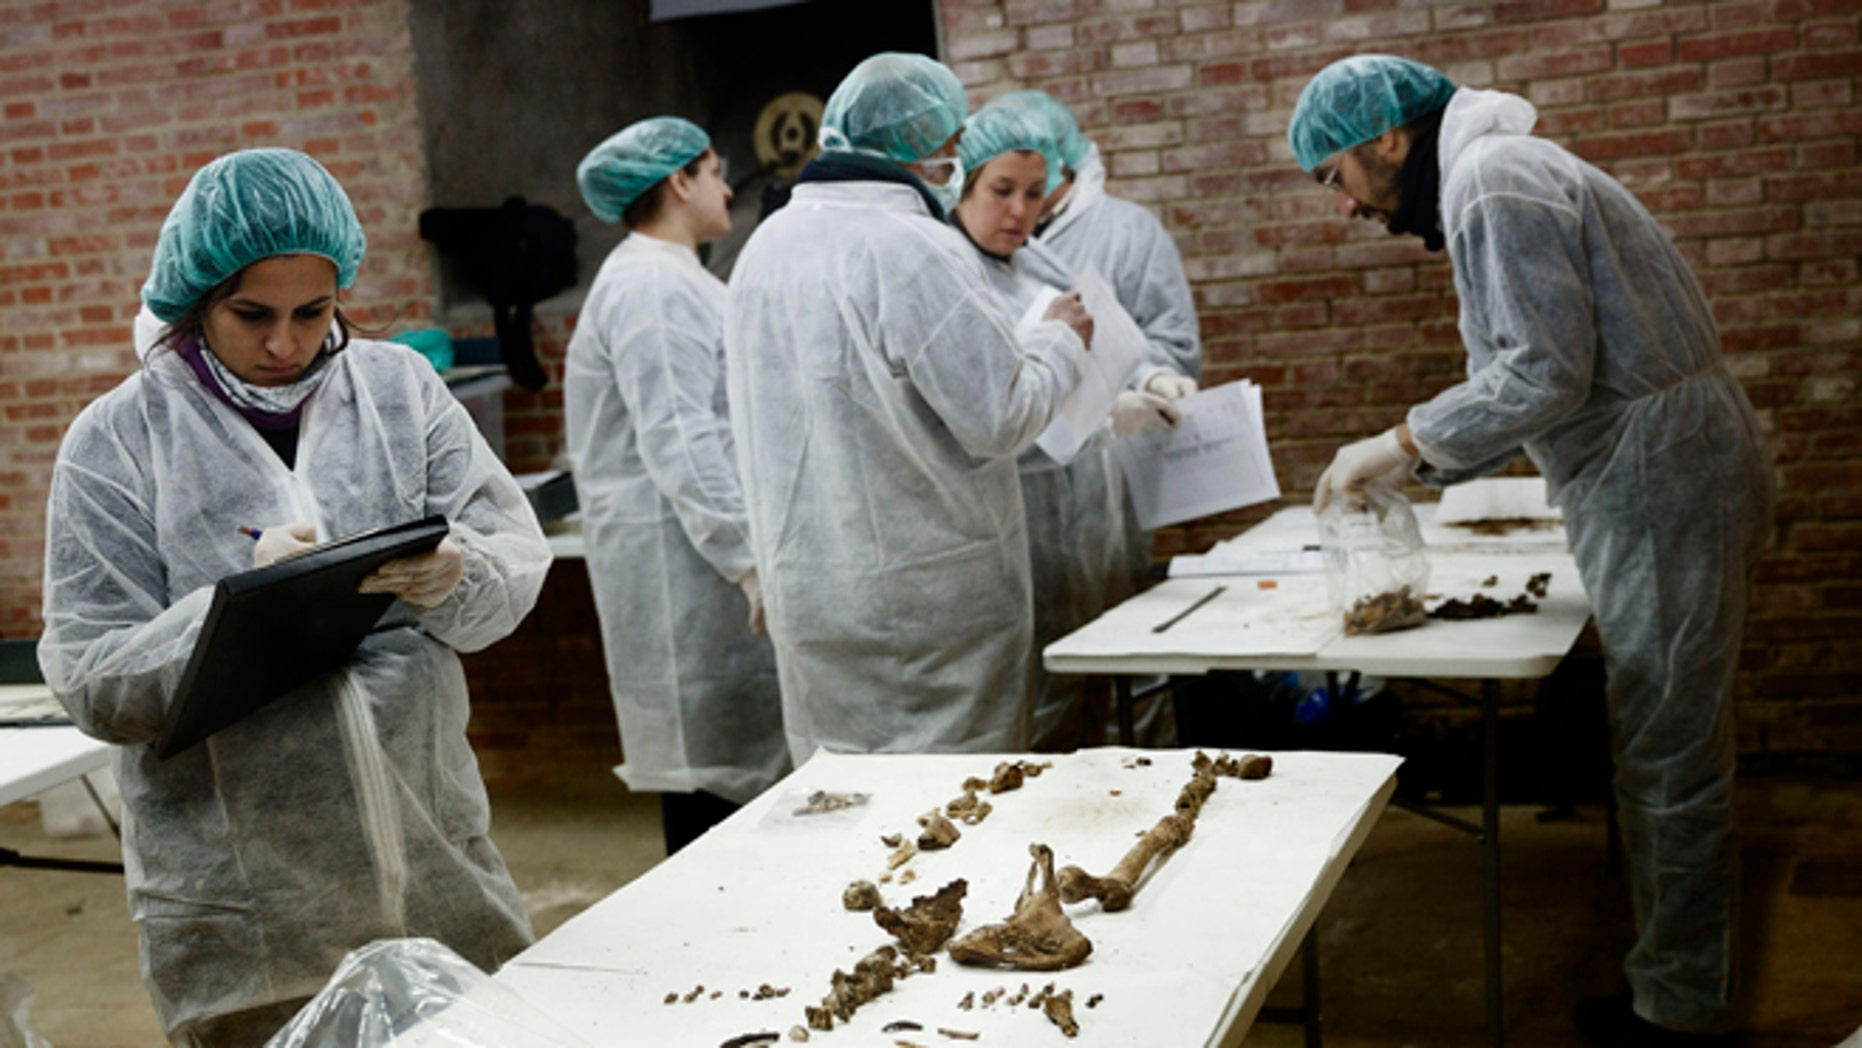 A team of archaeologists and anthropologists take notes after starting the excavation work after identifying three unrecorded and unidentified graves in the chapels crypt of the closed order Convent of the Barefoot Trinitarians in Madrid's historic Barrio de las Letras, or Literary Quarter, Spain, Saturday, Jan. 24, 2015. Experts searching for the remains of Miguel de Cervantes hope they may be entering the final phase of their nine-month quest to solve the mystery of where the great Spanish writer was laid to rest. The 'Don Quixote' author was buried in 1616 at the Convent but the exact whereabouts of his grave in the tiny convent chapel are unknown. The bones found will be exhumed and analyze, after that, the experts will try to identify the bones using DNA profiling. (AP Photo/Daniel Ochoa de Olza)